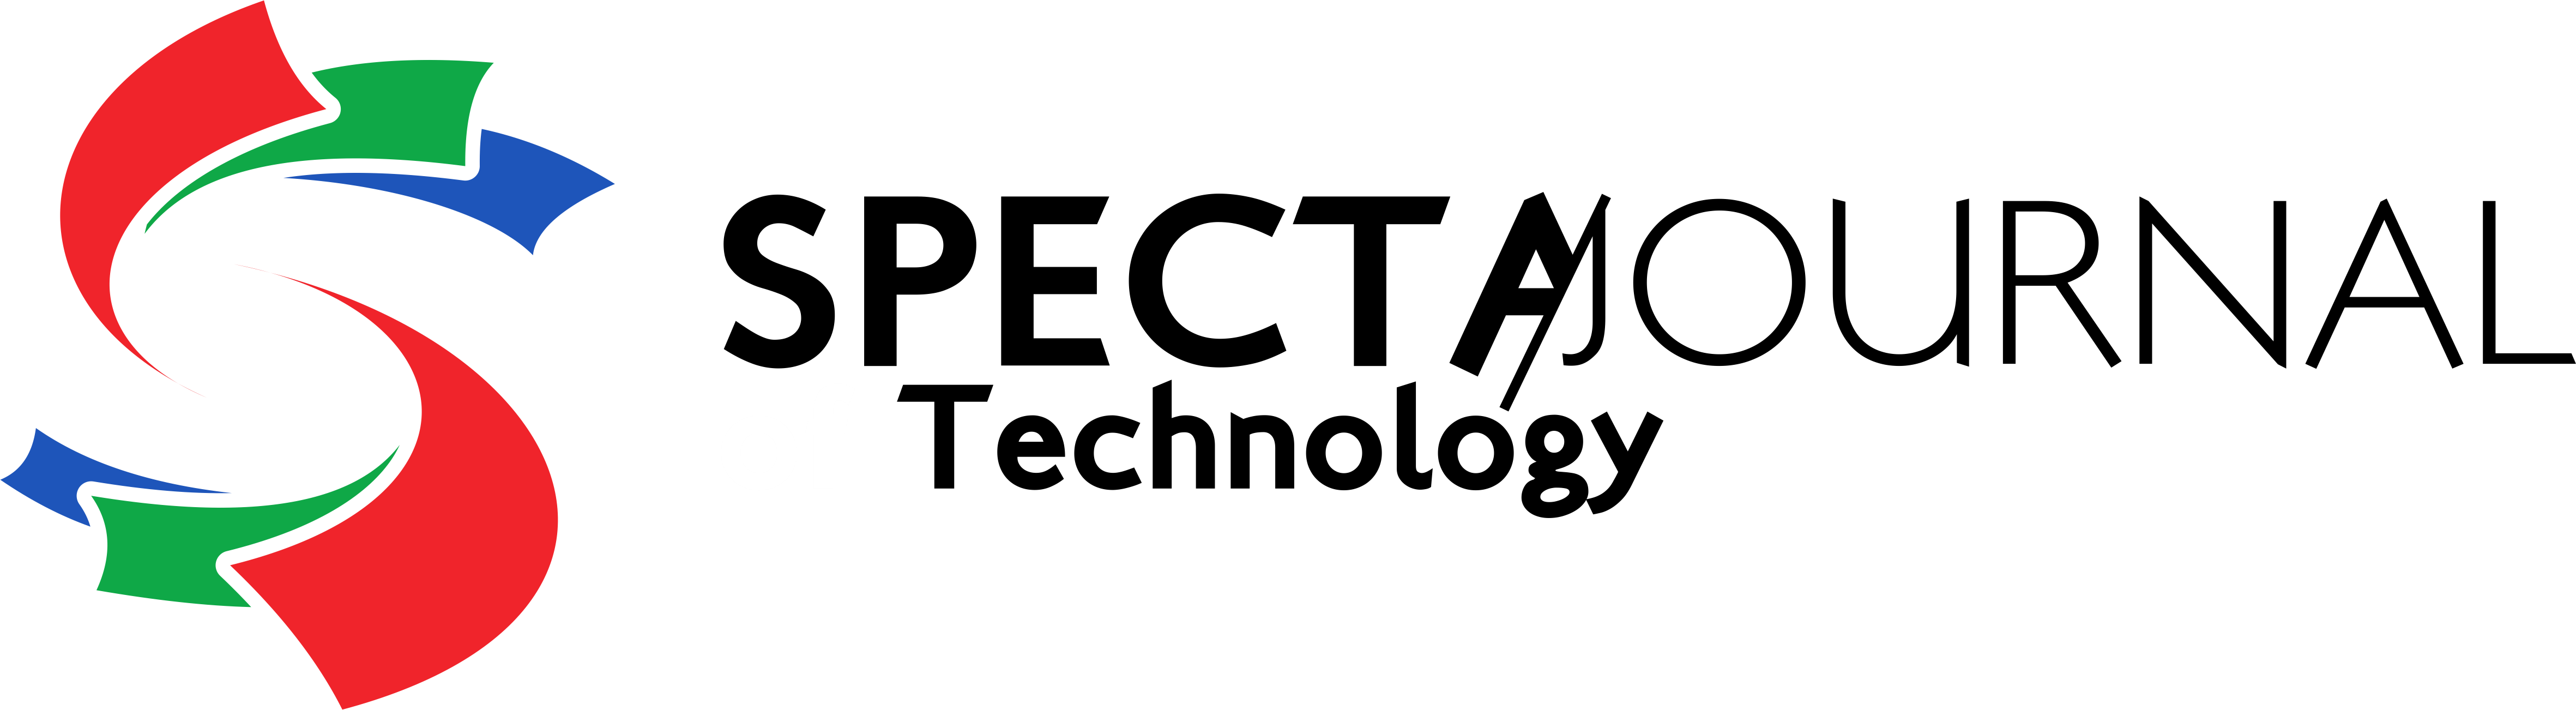 SPECTA Journal of Technology